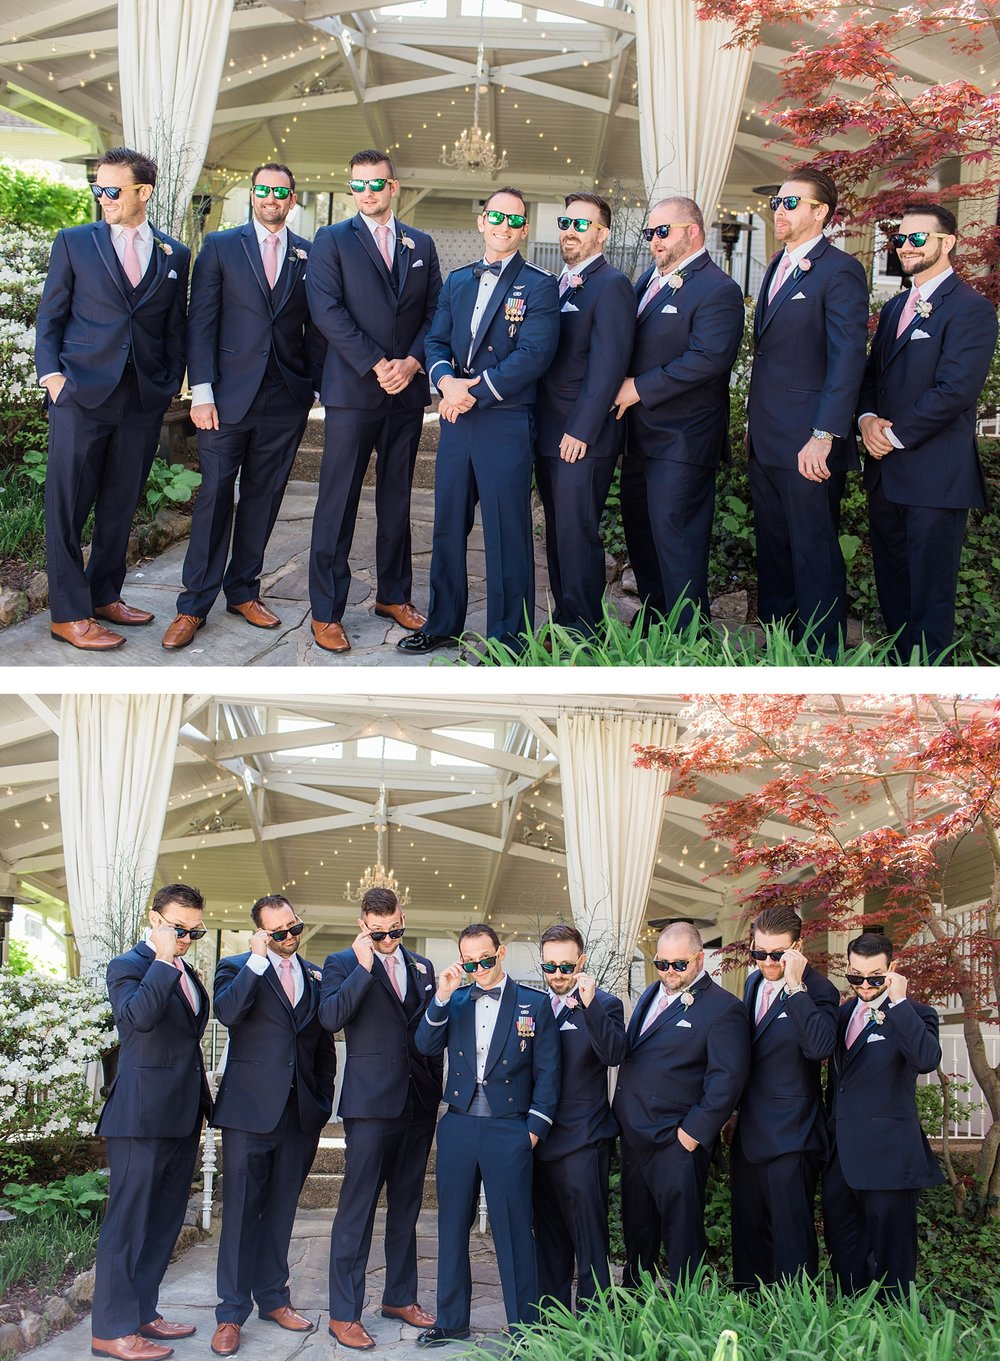 groomsmen-cjs-square-franklin.jpg